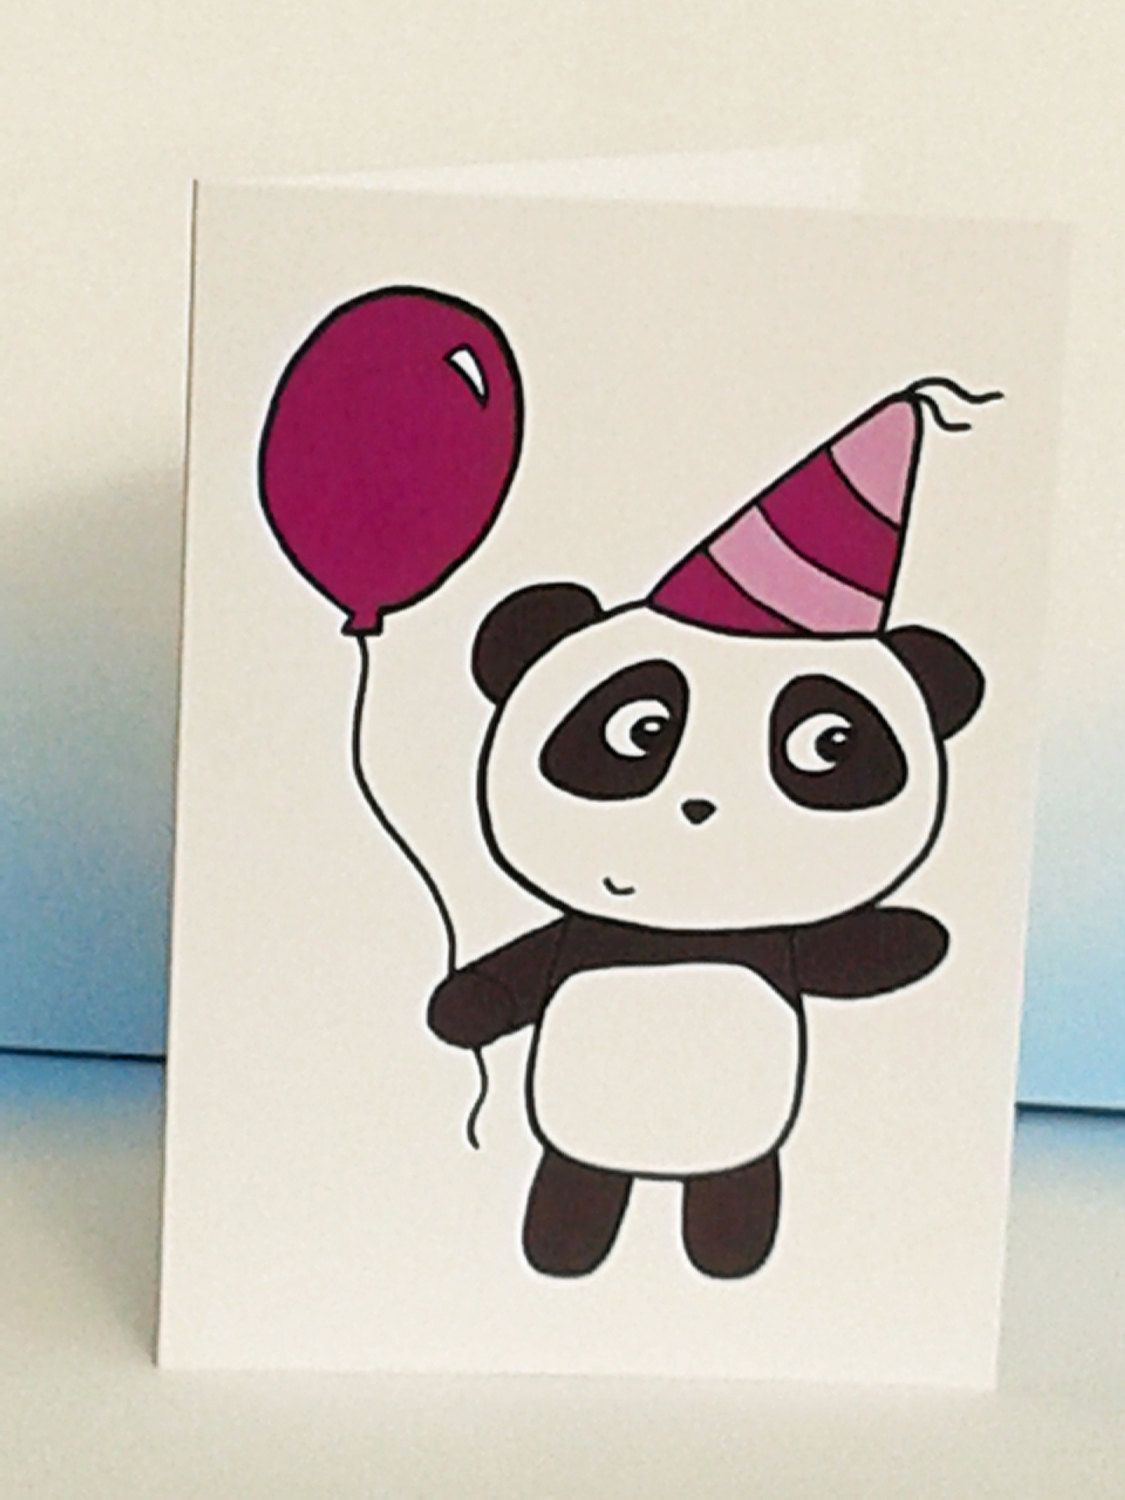 Panda Birthday Card Cute Panda Card Party Card Congratulations